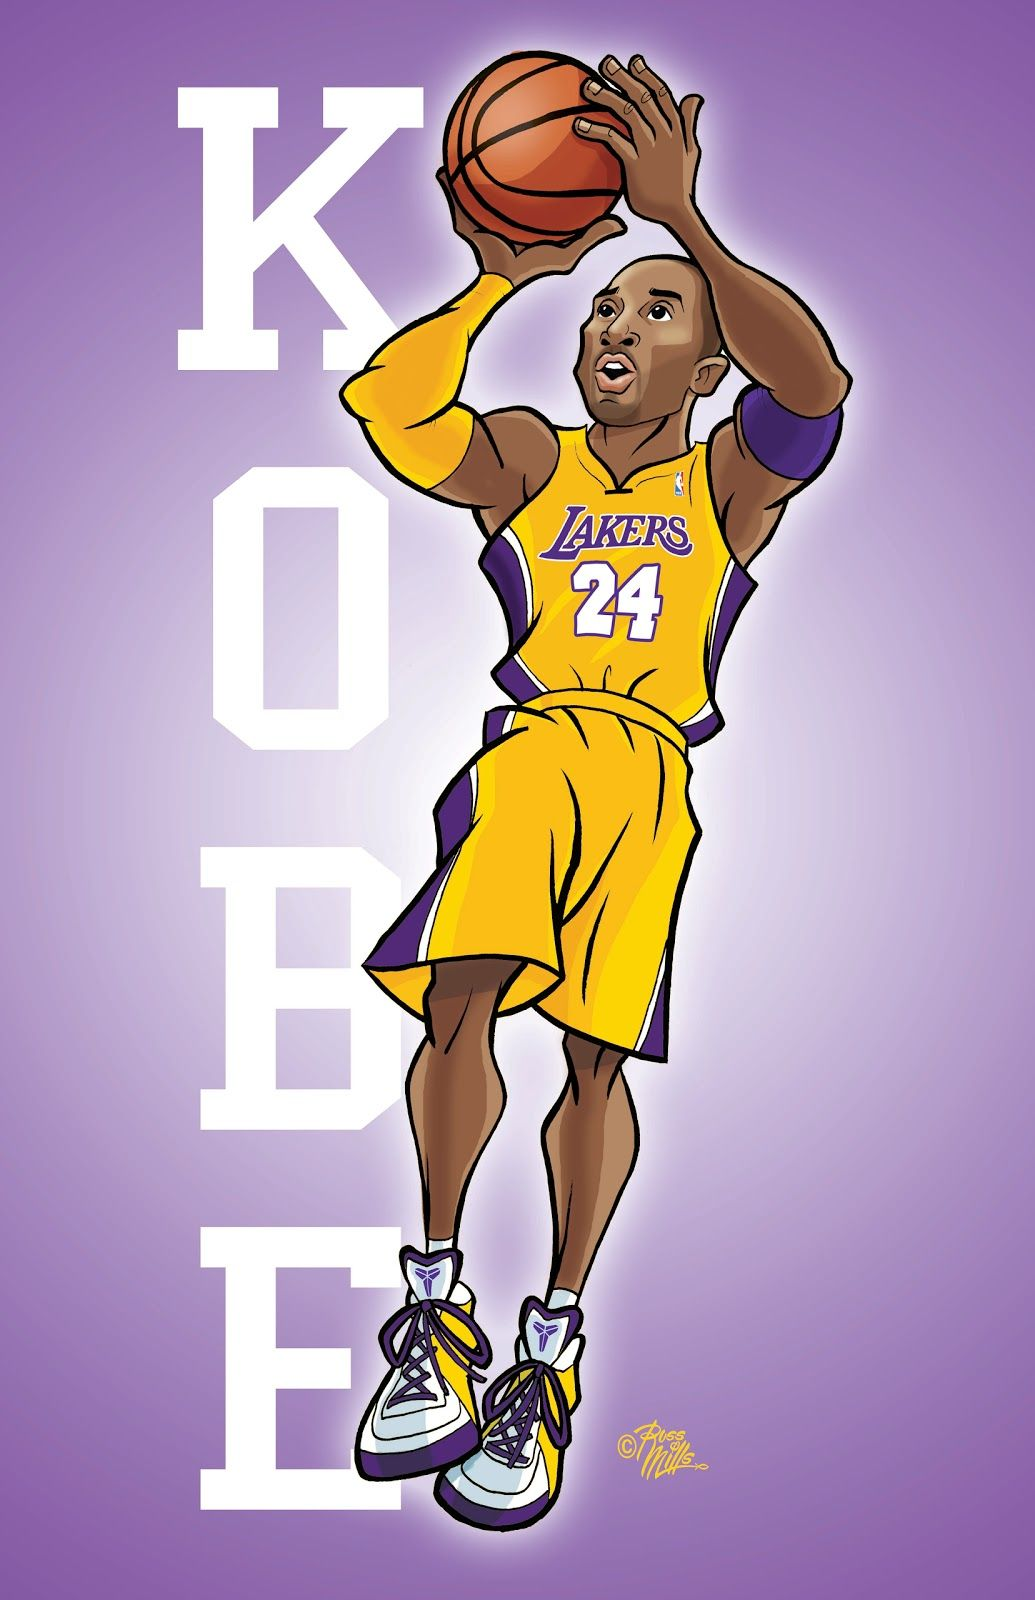 Kobe Bryant Cartoon Wallpaper Posted By Ryan Anderson